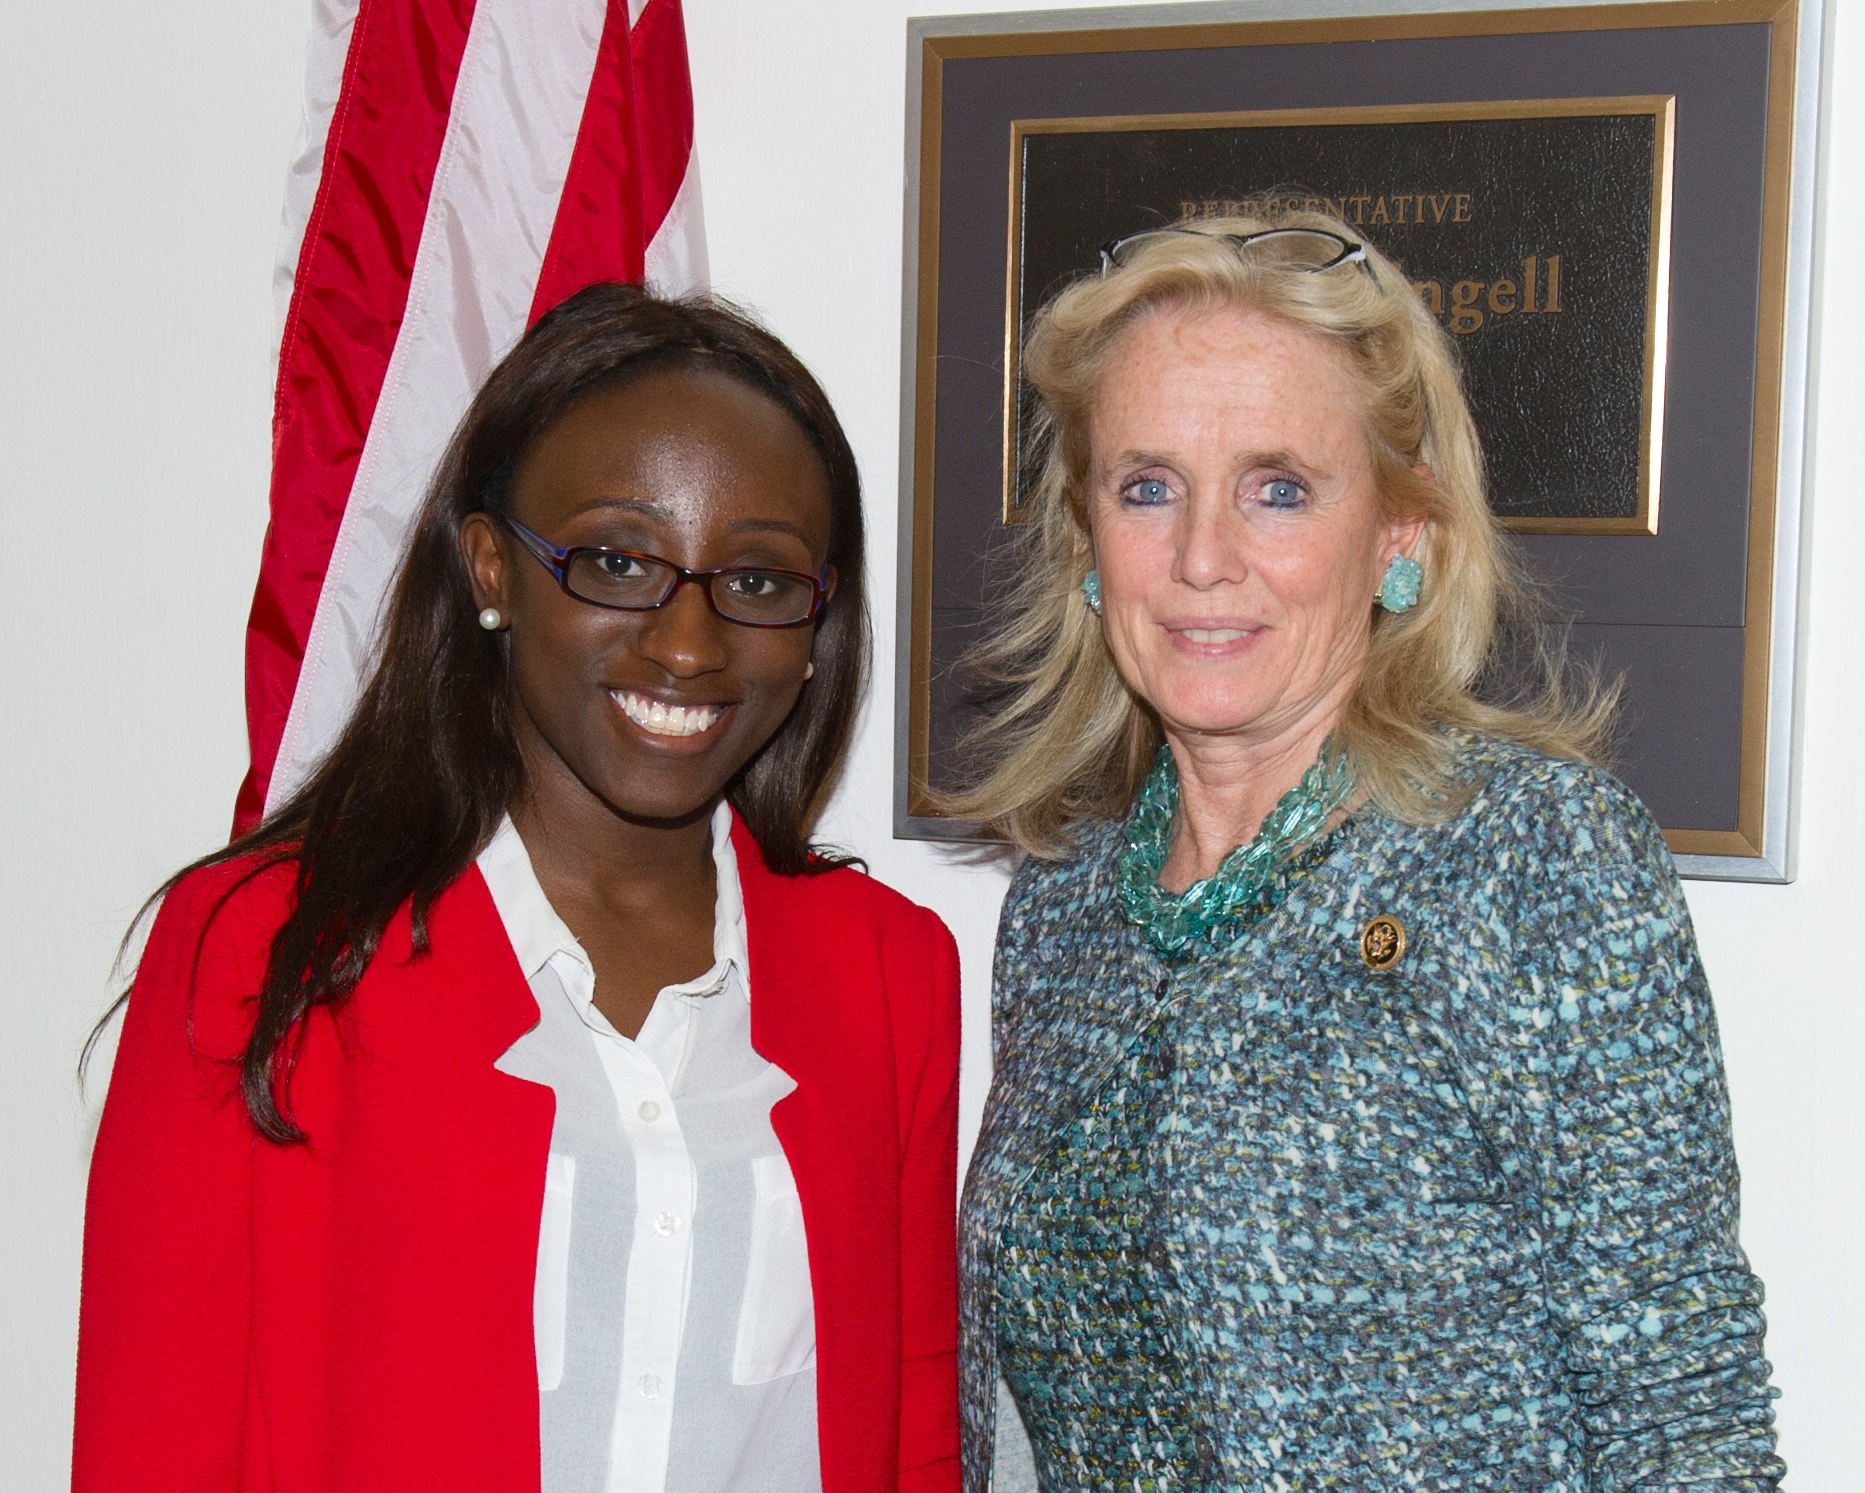 Rep Dingell with her intern